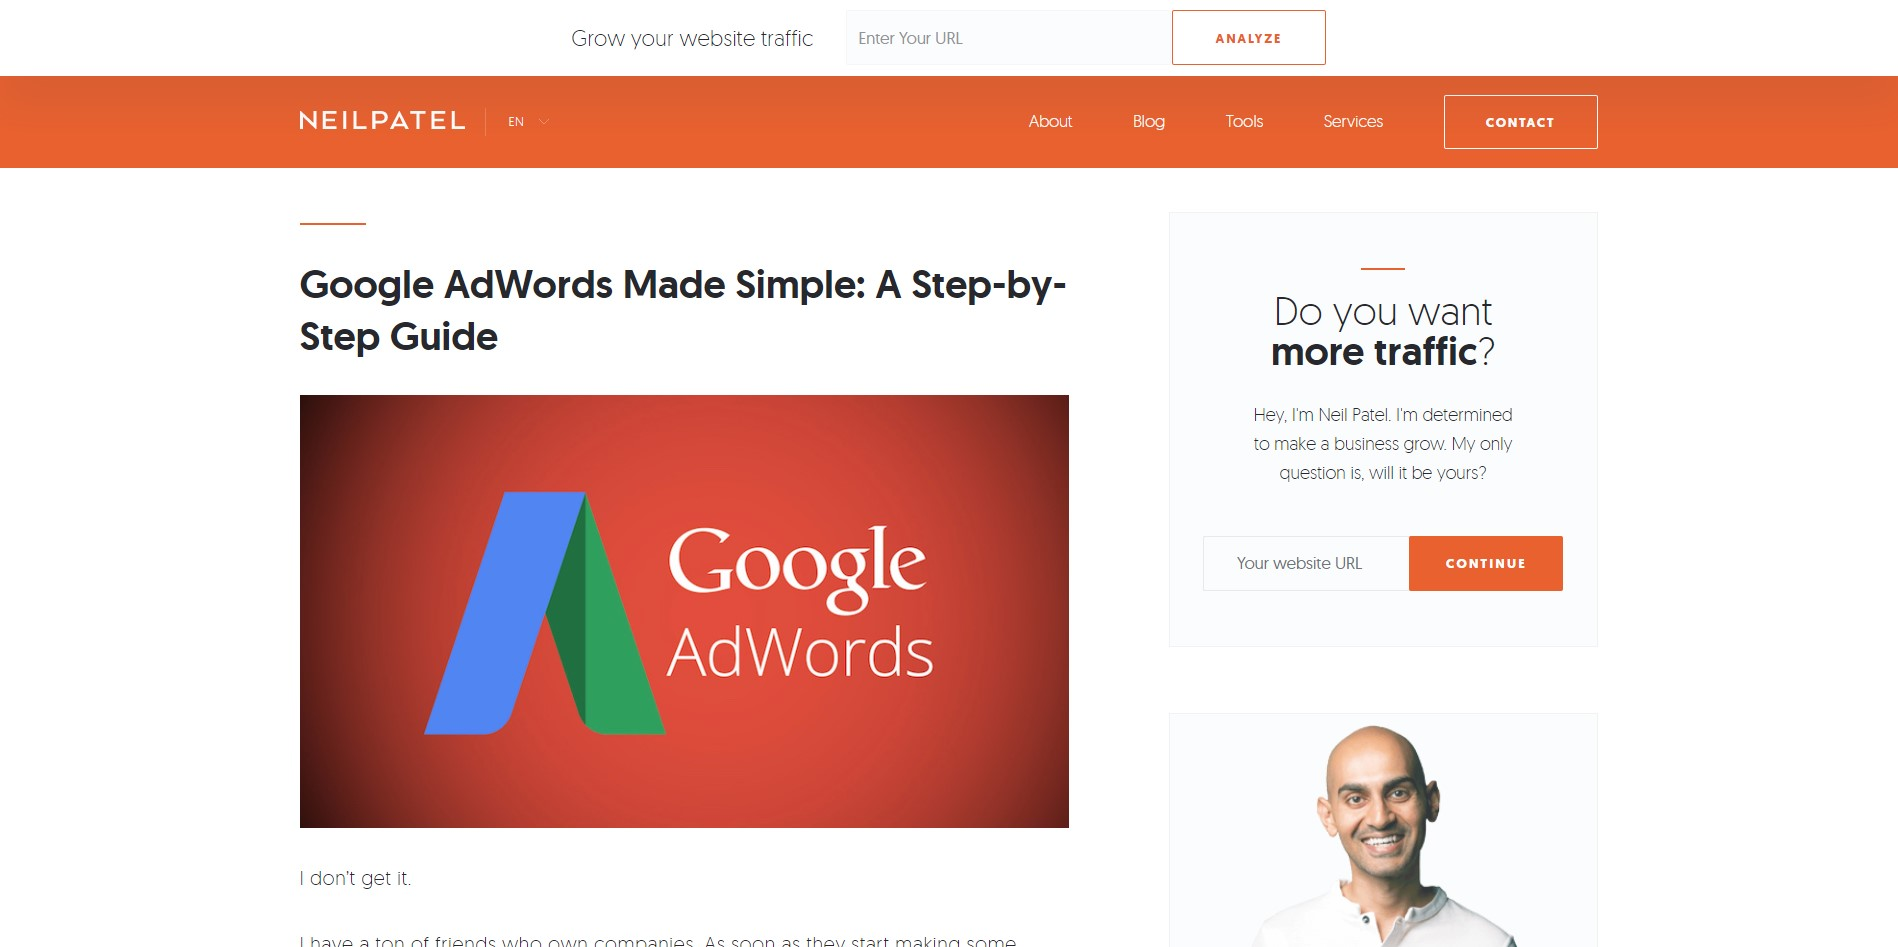 1. Neil Patel's Google AdWords Made Simple: A Step-by-Step Guide